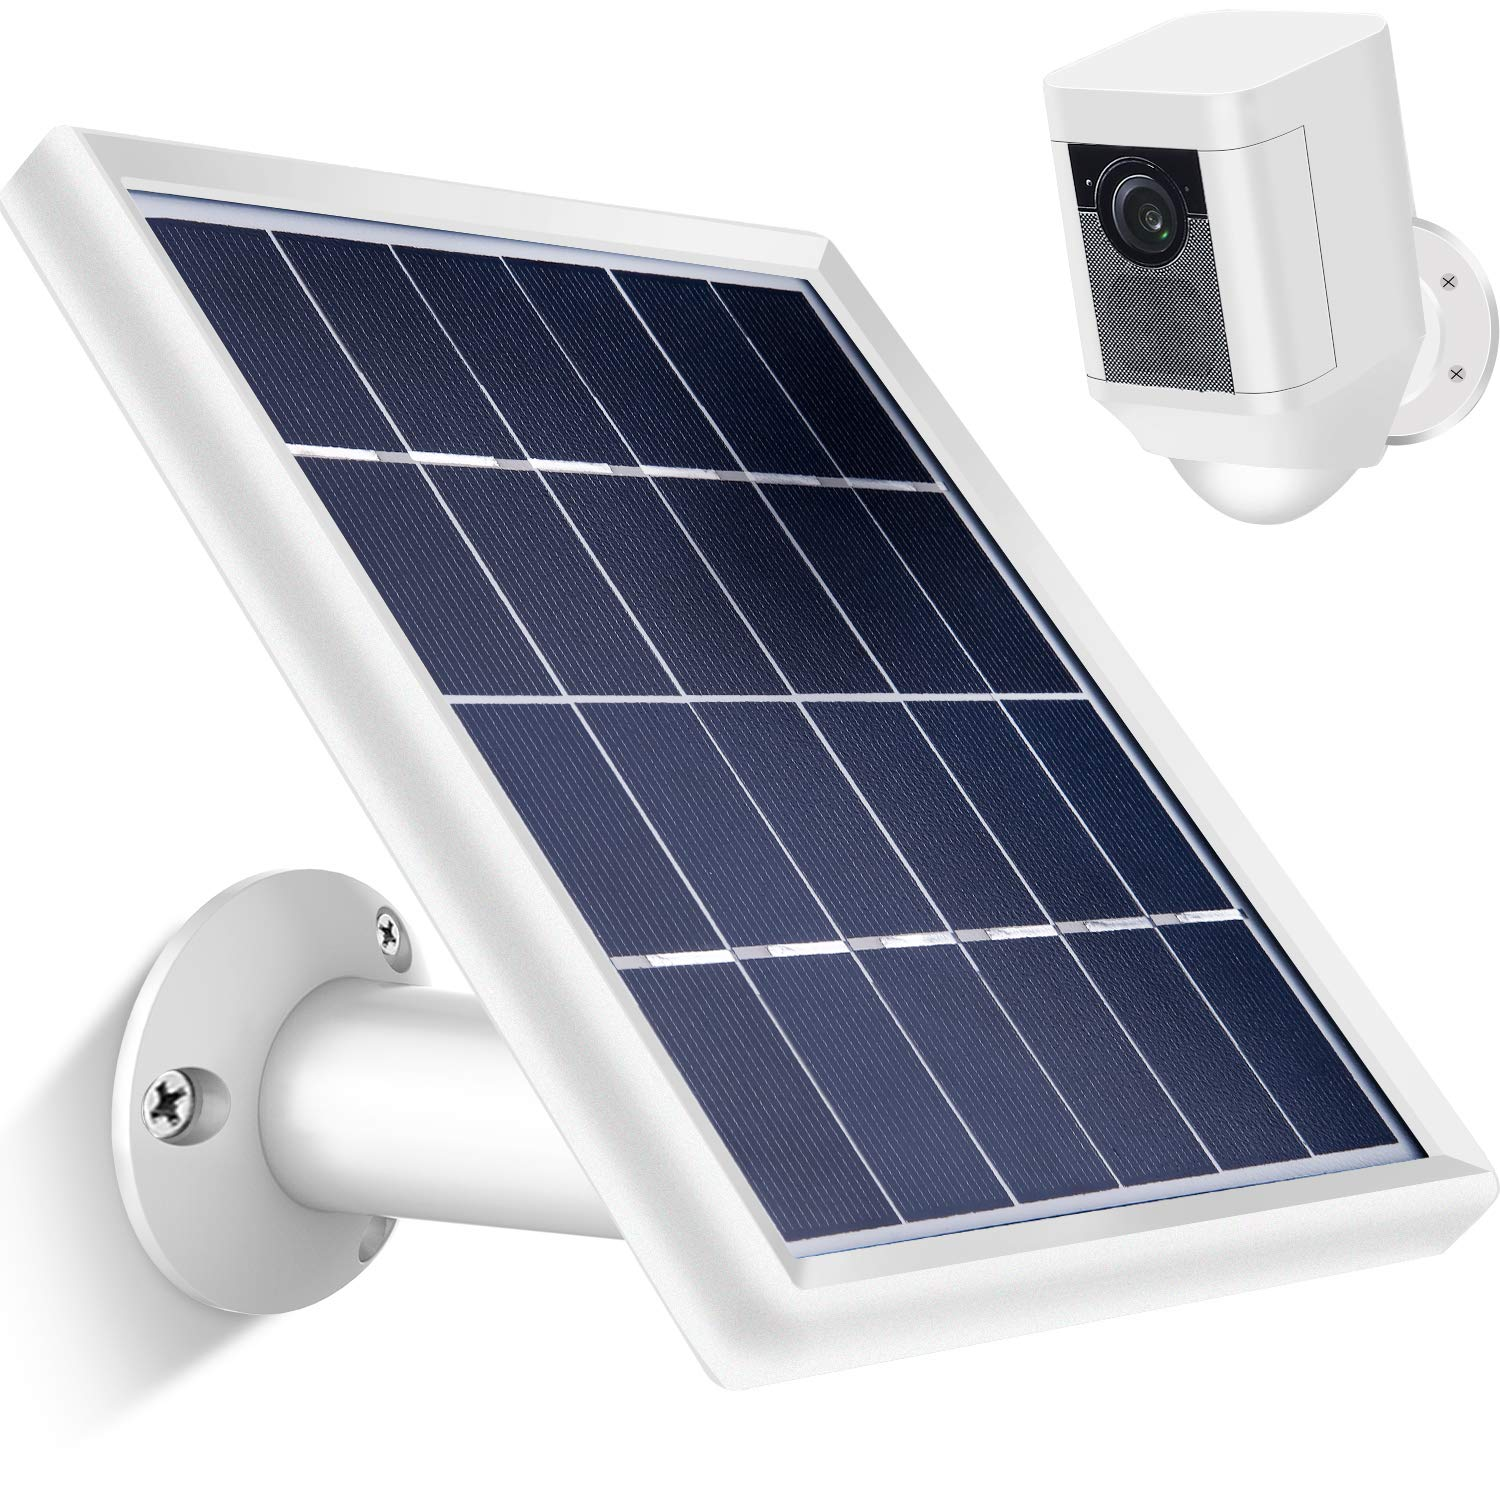 Skylety Solar Panel for Ring Spotlight Cam with Security Wall Mount, 3.6 m/ 11.8 ft Cable with Barrel Connector, 5 V/ 3.5 W (Max) Output (Not for Stick Up Cam/Arlo Cam Series) Without CAM (White) by Skylety